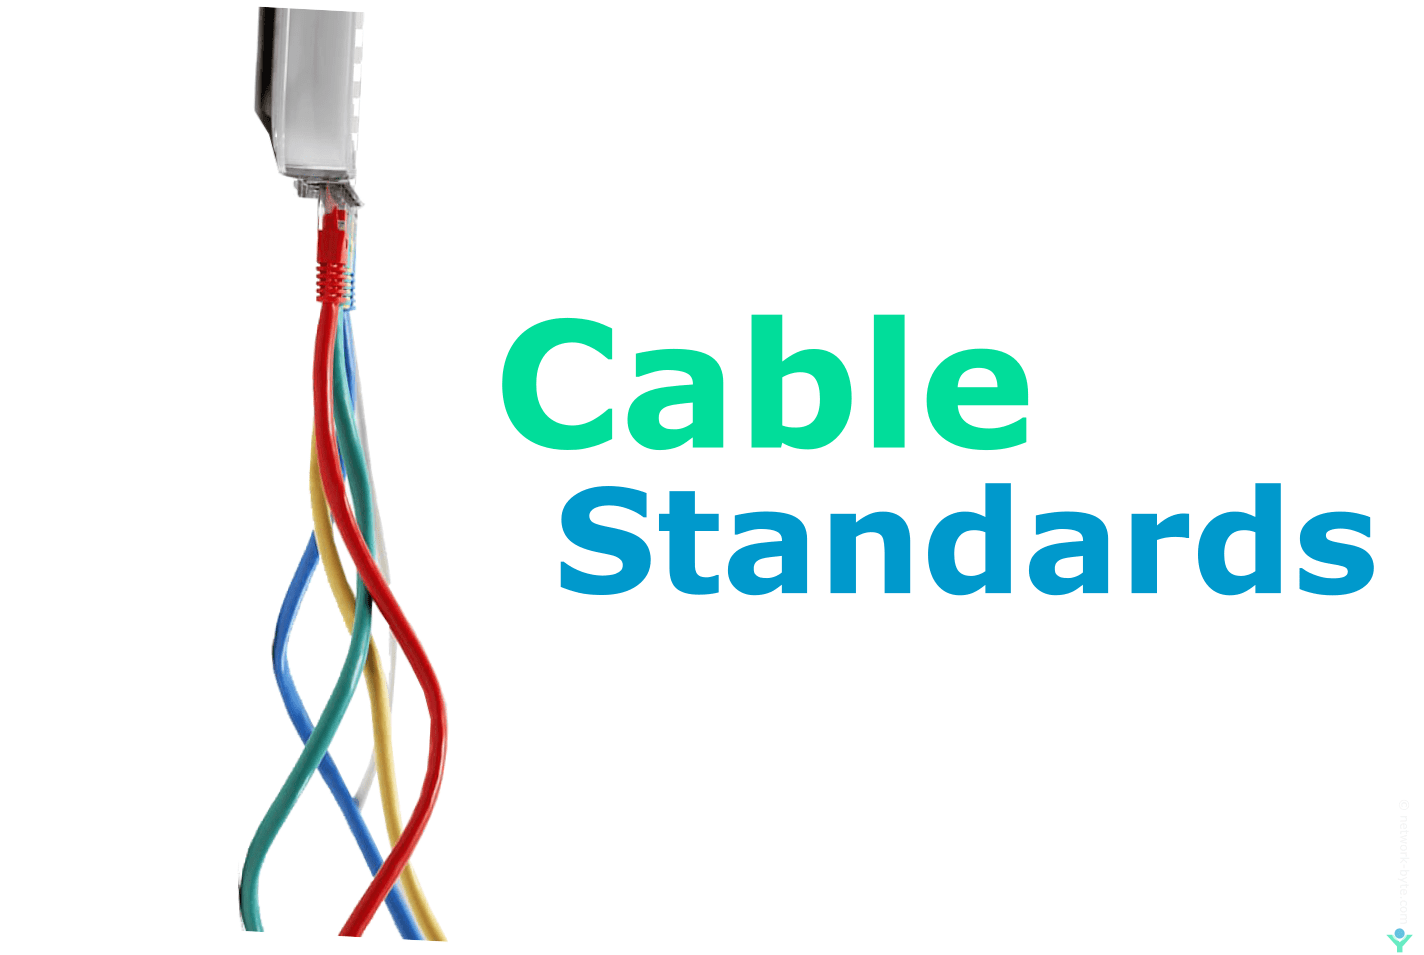 """Cable Standard <span class=""""bsf-rt-reading-time""""><span class=""""bsf-rt-display-label"""" prefix=""""Reading Time""""></span> <span class=""""bsf-rt-display-time"""" reading_time=""""6""""></span> <span class=""""bsf-rt-display-postfix"""" postfix=""""mins""""></span></span><!-- .bsf-rt-reading-time -->"""